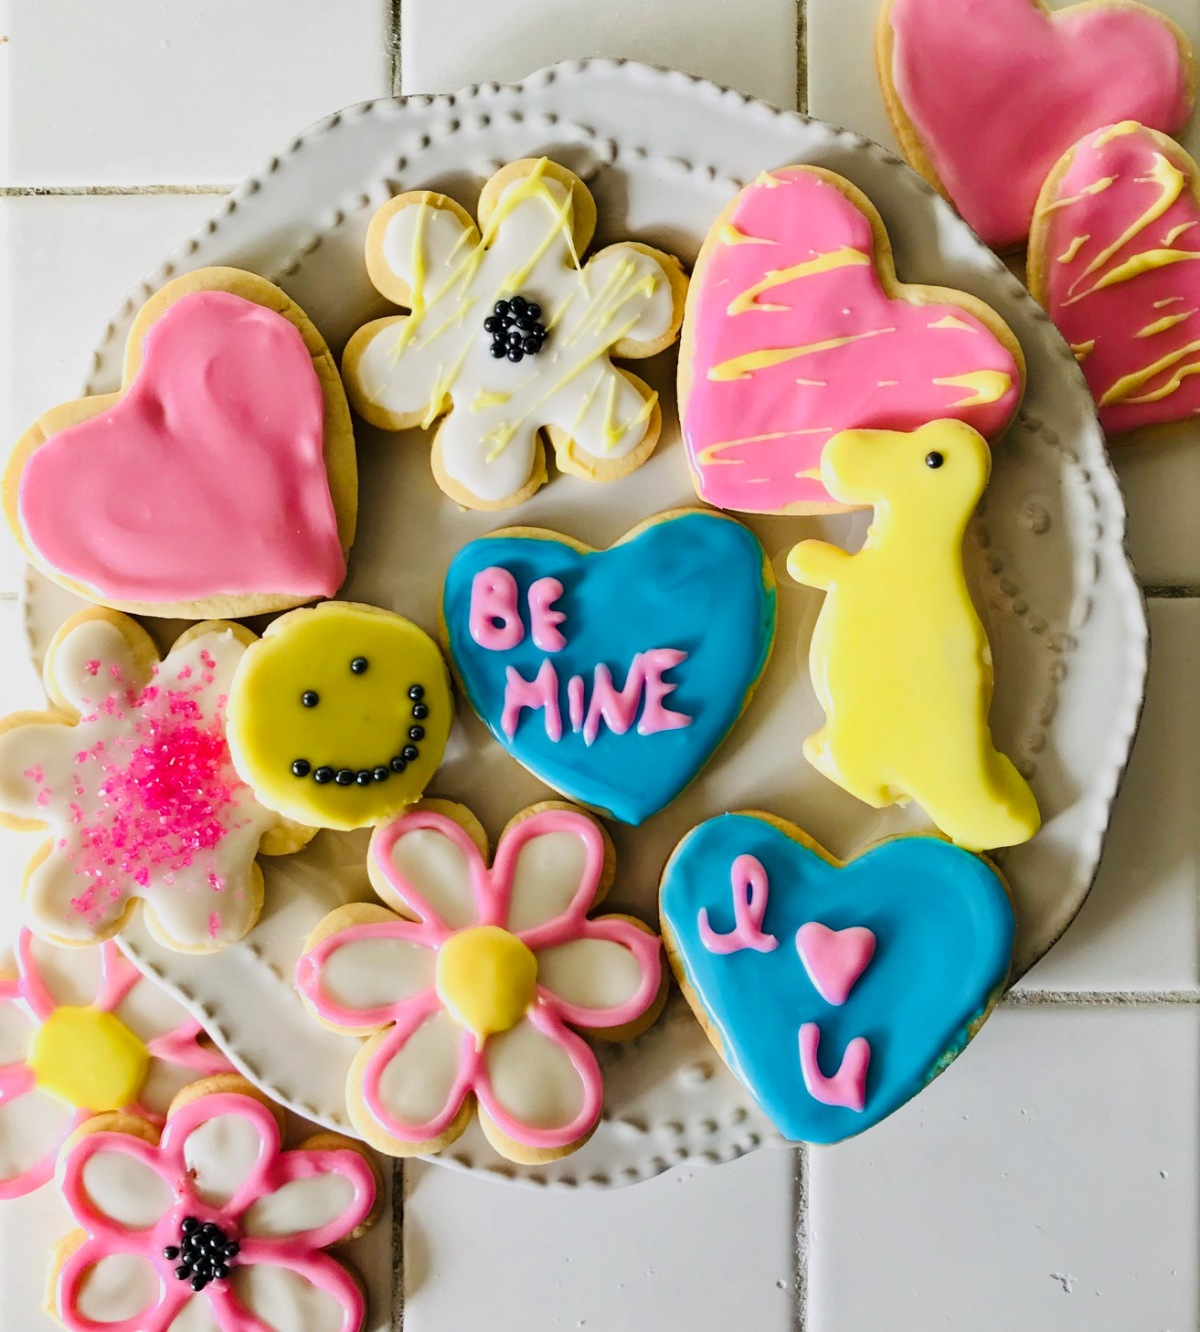 Sweets for Your Sweets: My Sugar Cookie Recipe